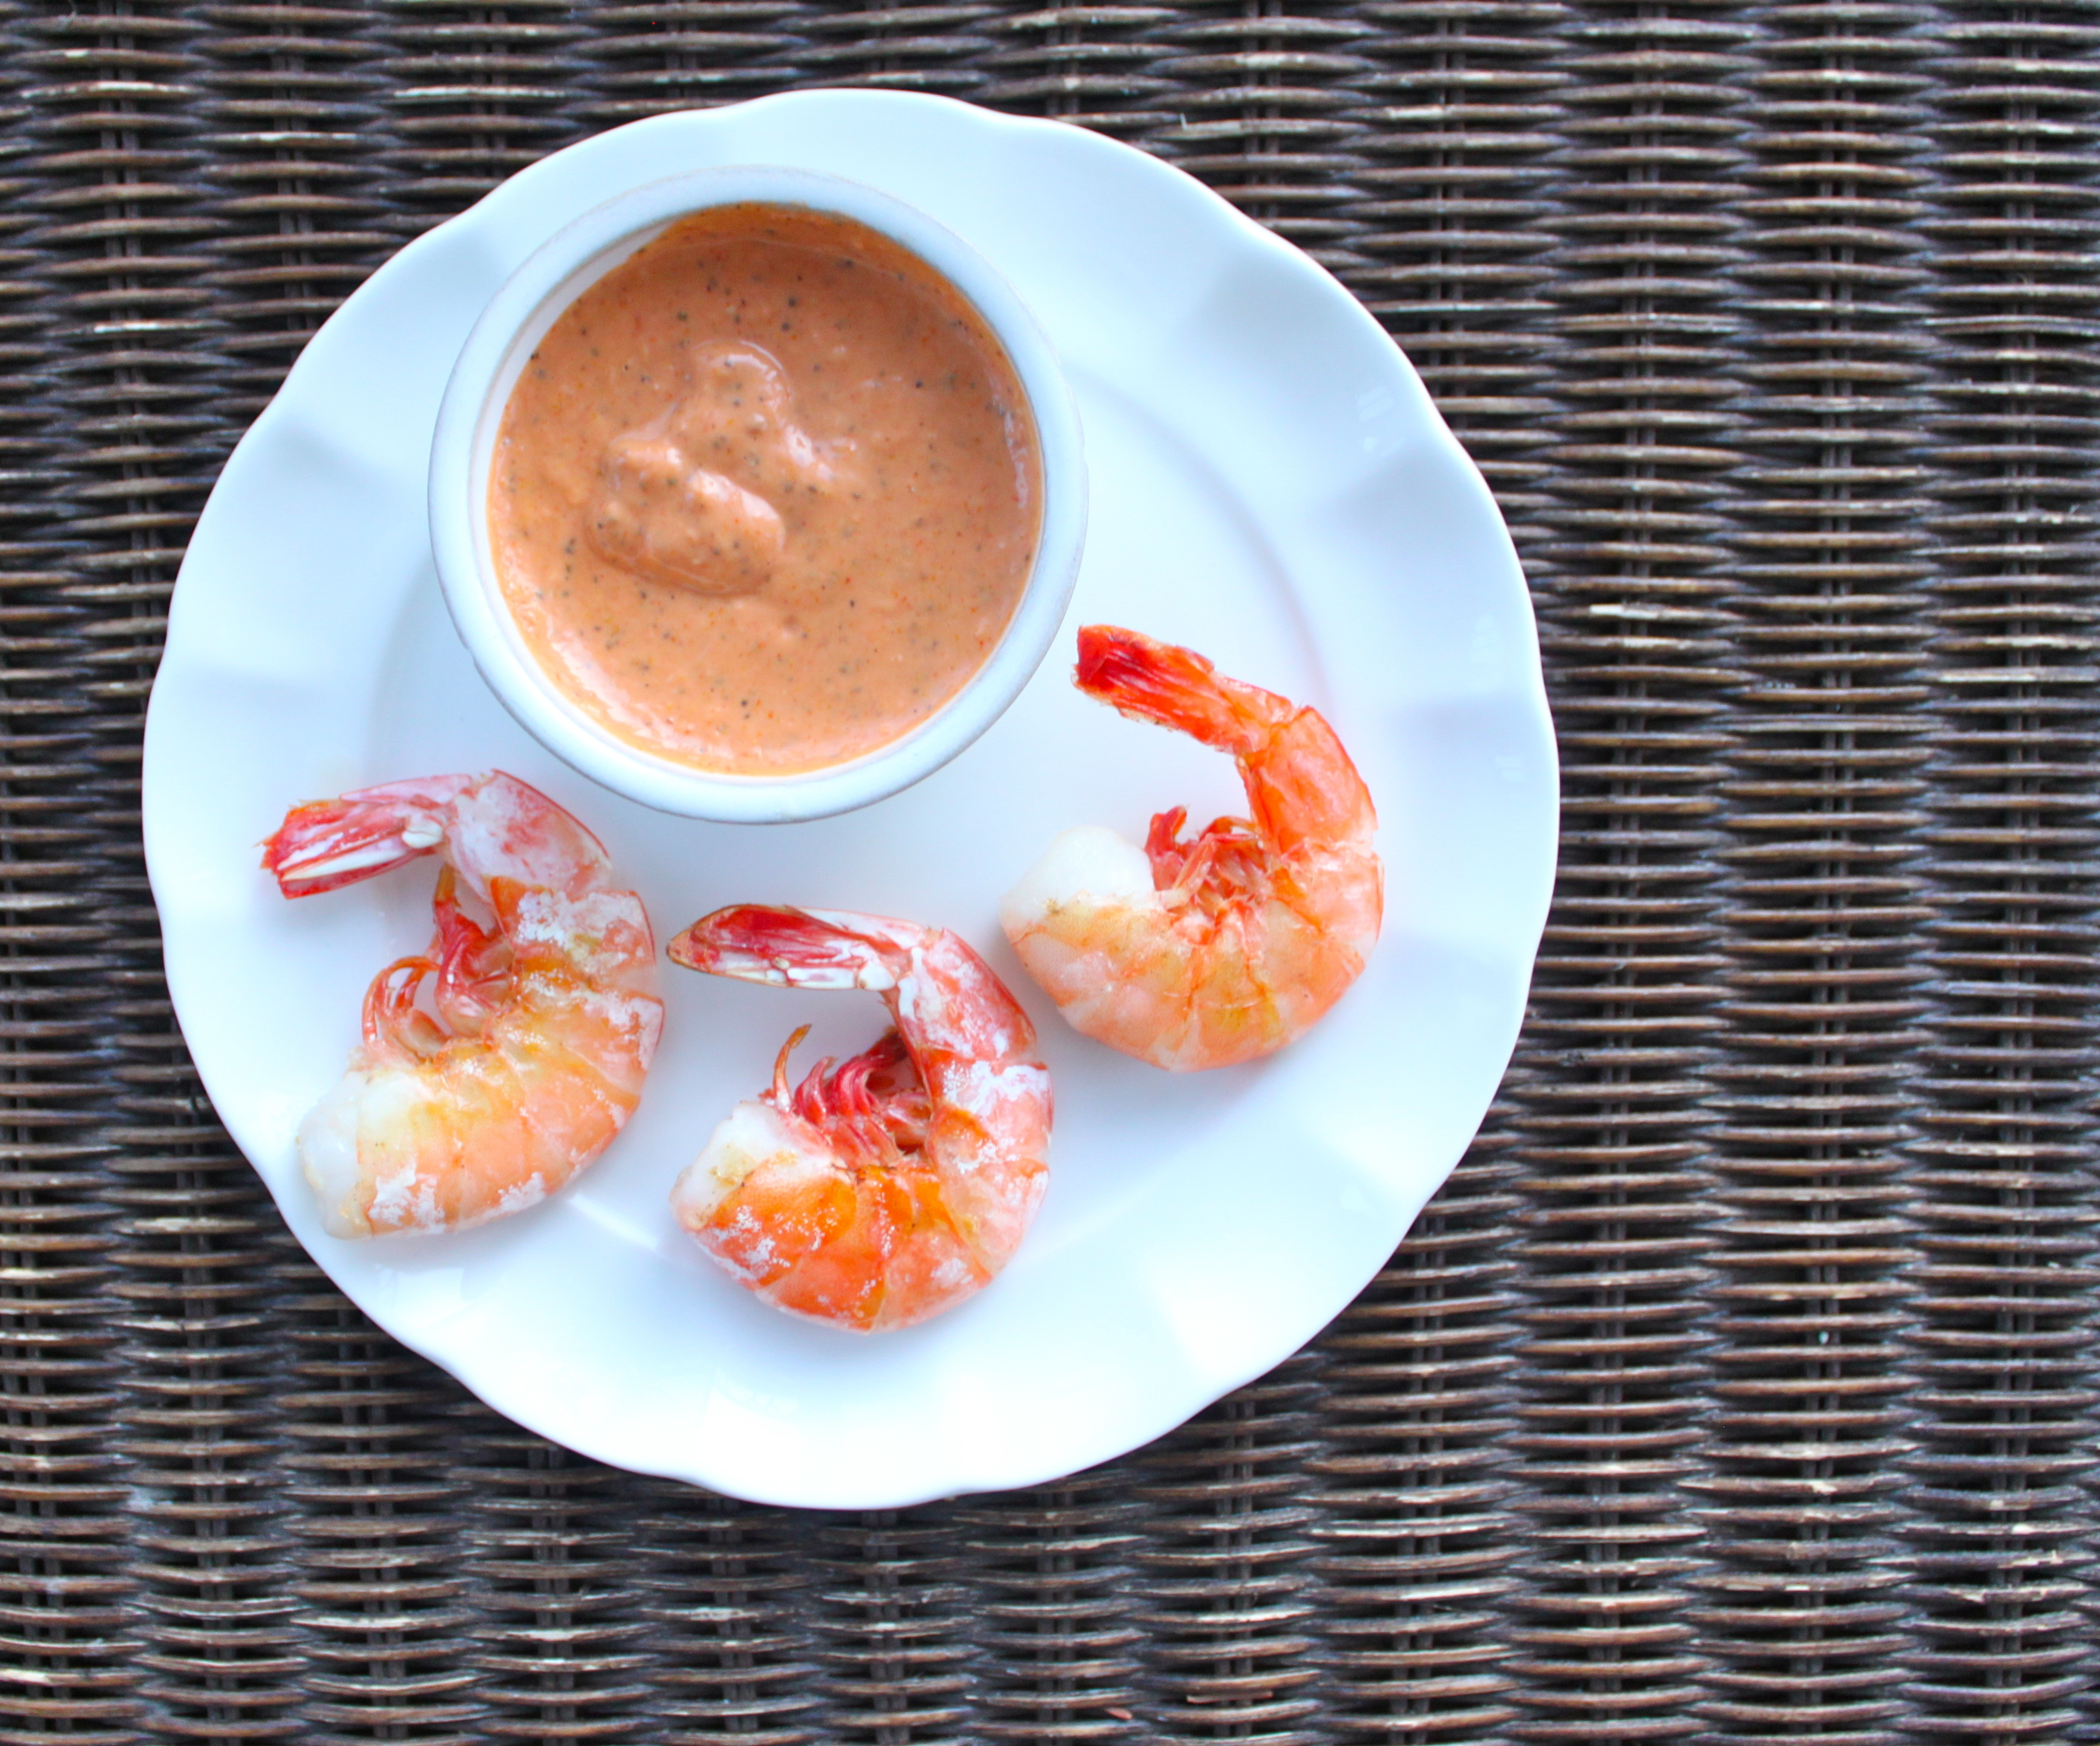 Shrimp with comeback sauce